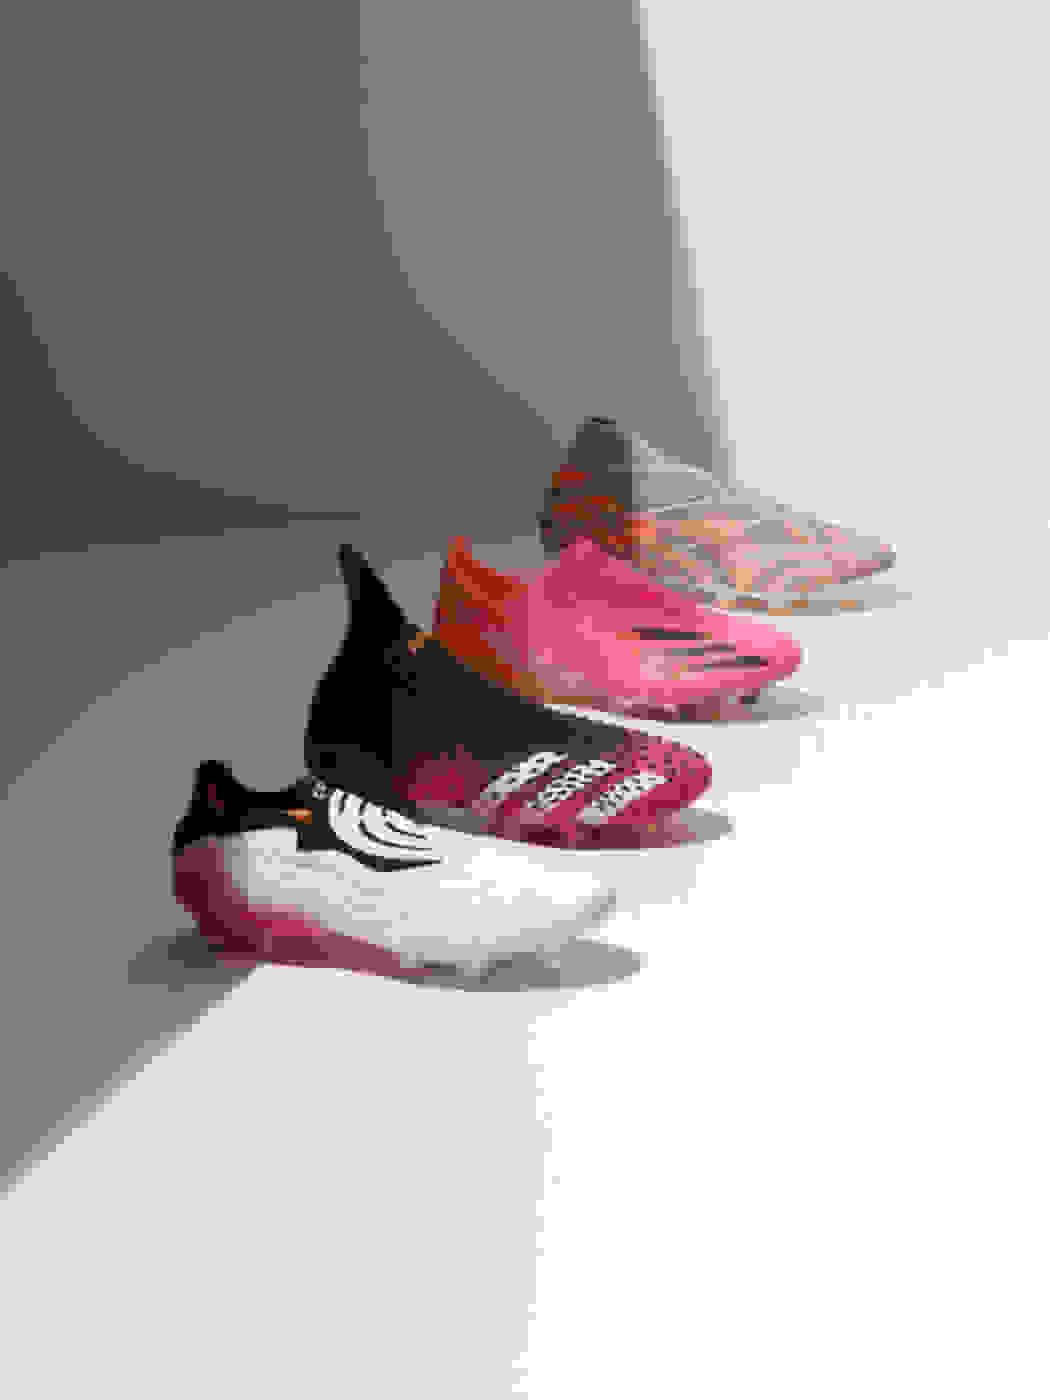 Image featuring the Predator, Nemeziz, X and Copa boots.